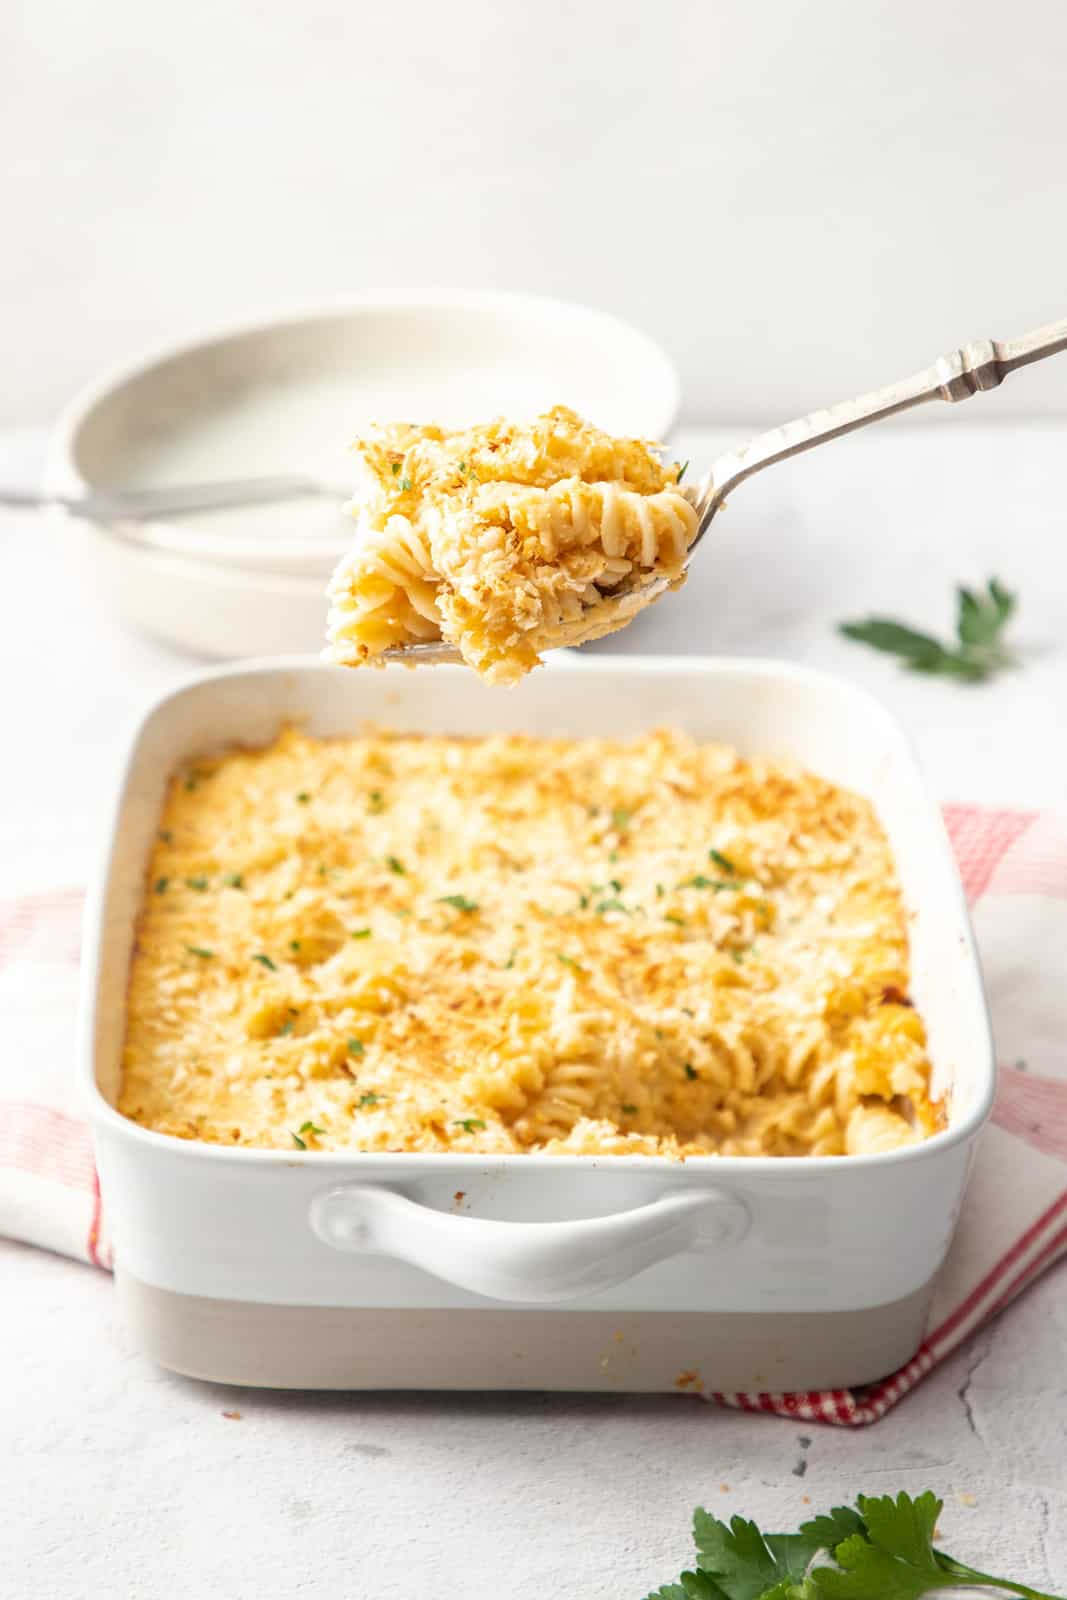 cheesy cauliflower pasta bake in a white casserole dish with a scoop of pasta being held overhead